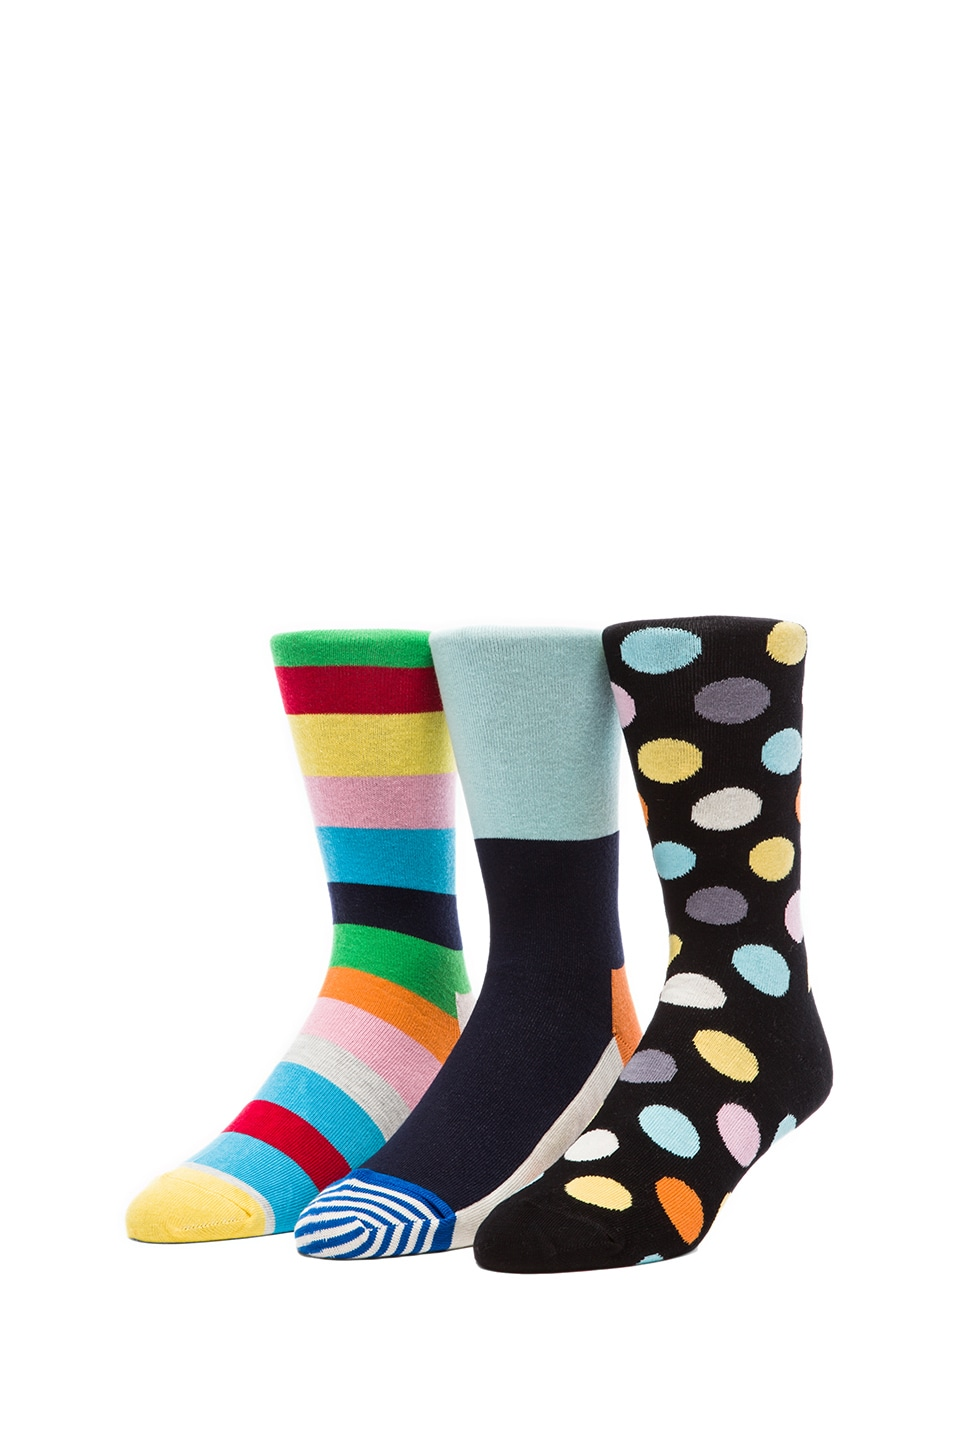 Happy Socks in Striped Toe & Big Dot & Stripe